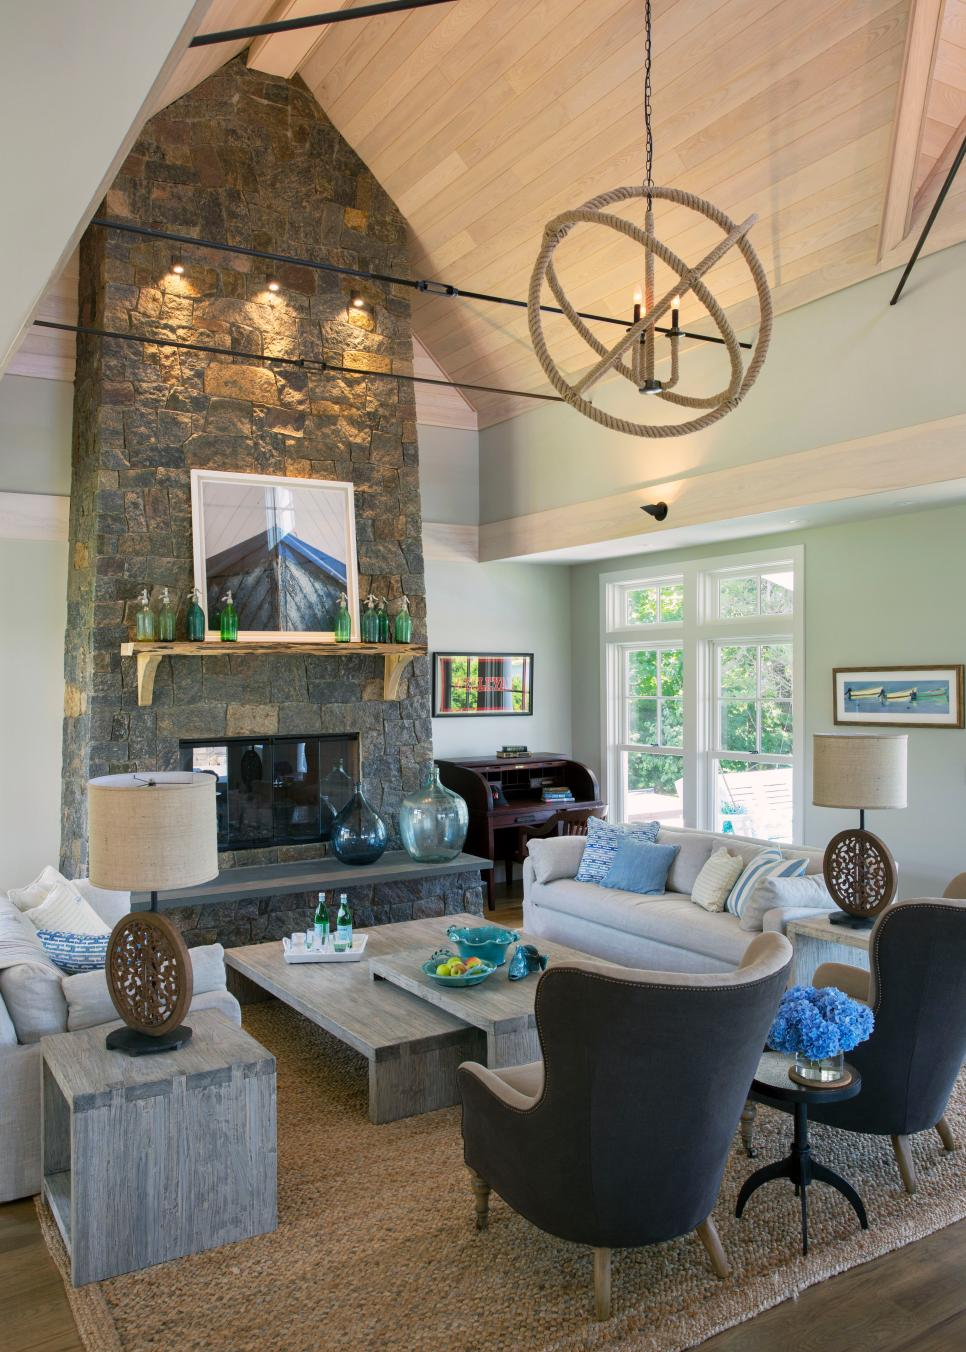 Colorful cape cod family compound martha 39 s vineyard interior design hgtv Interior design ideas cape cod home